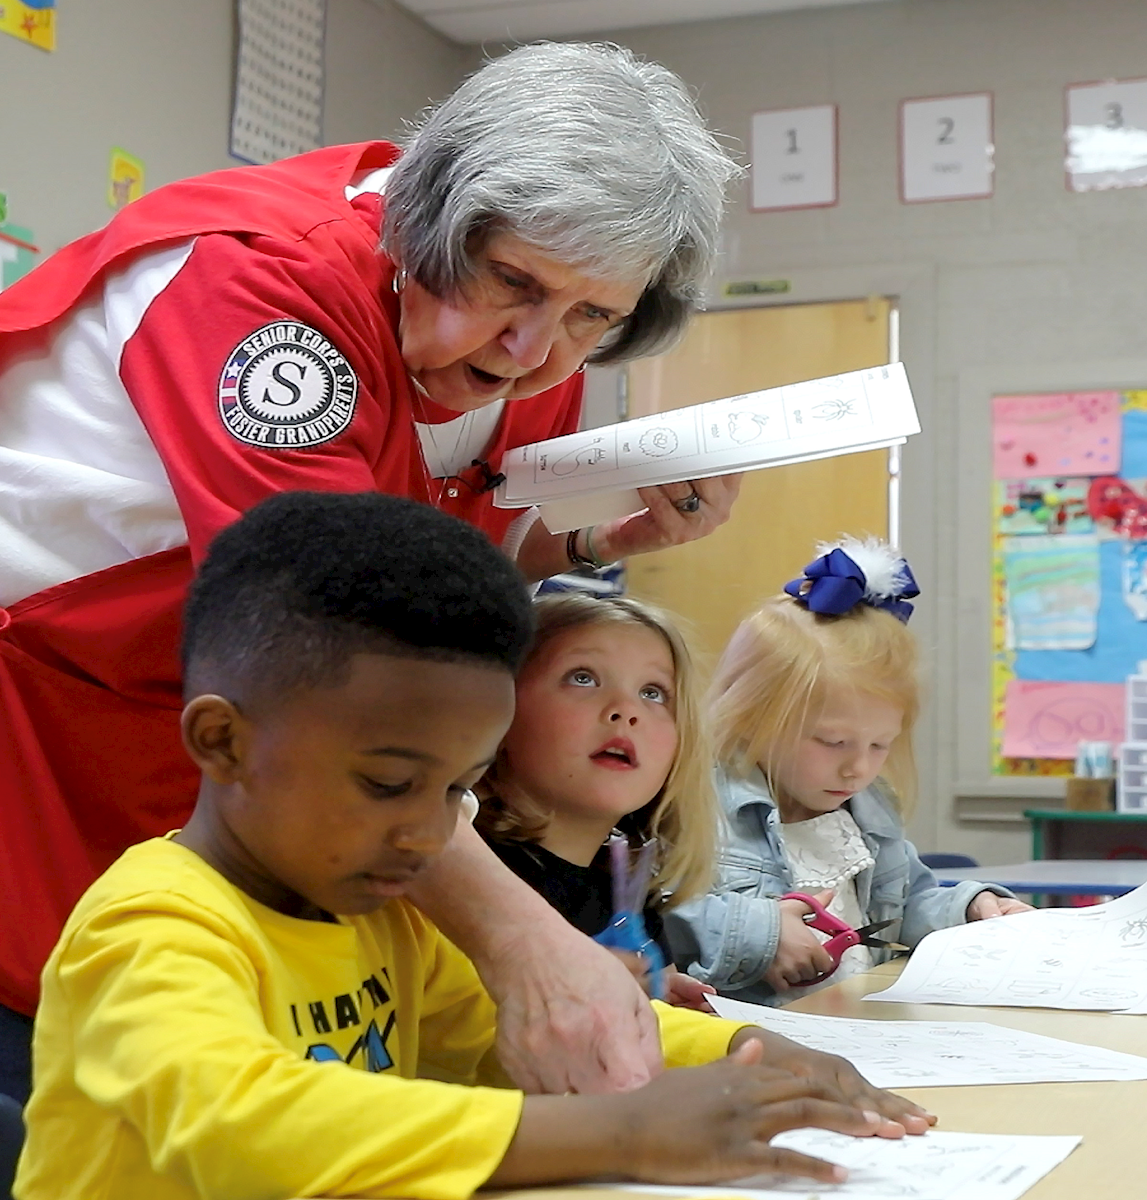 An ederly woman with grey hair leans over a group of preschool students as they sit at a table. The woman has papers in her hand and is pointing to a paper on the table.